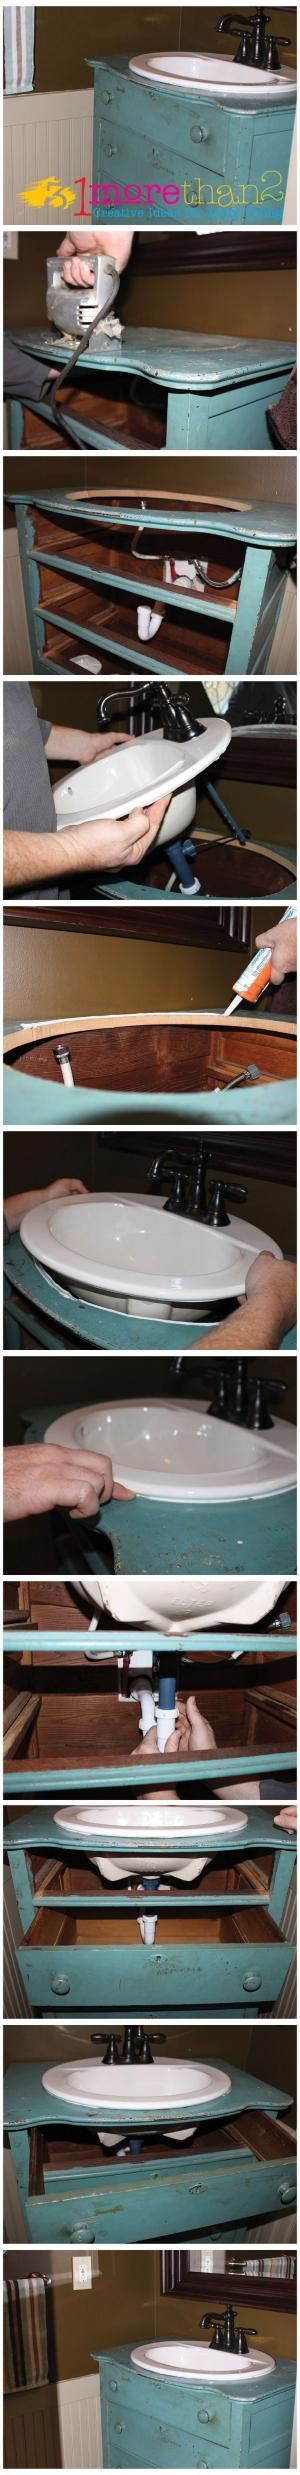 DIY. How to make a bathroom sink vanity from an old dresser. Step by step.